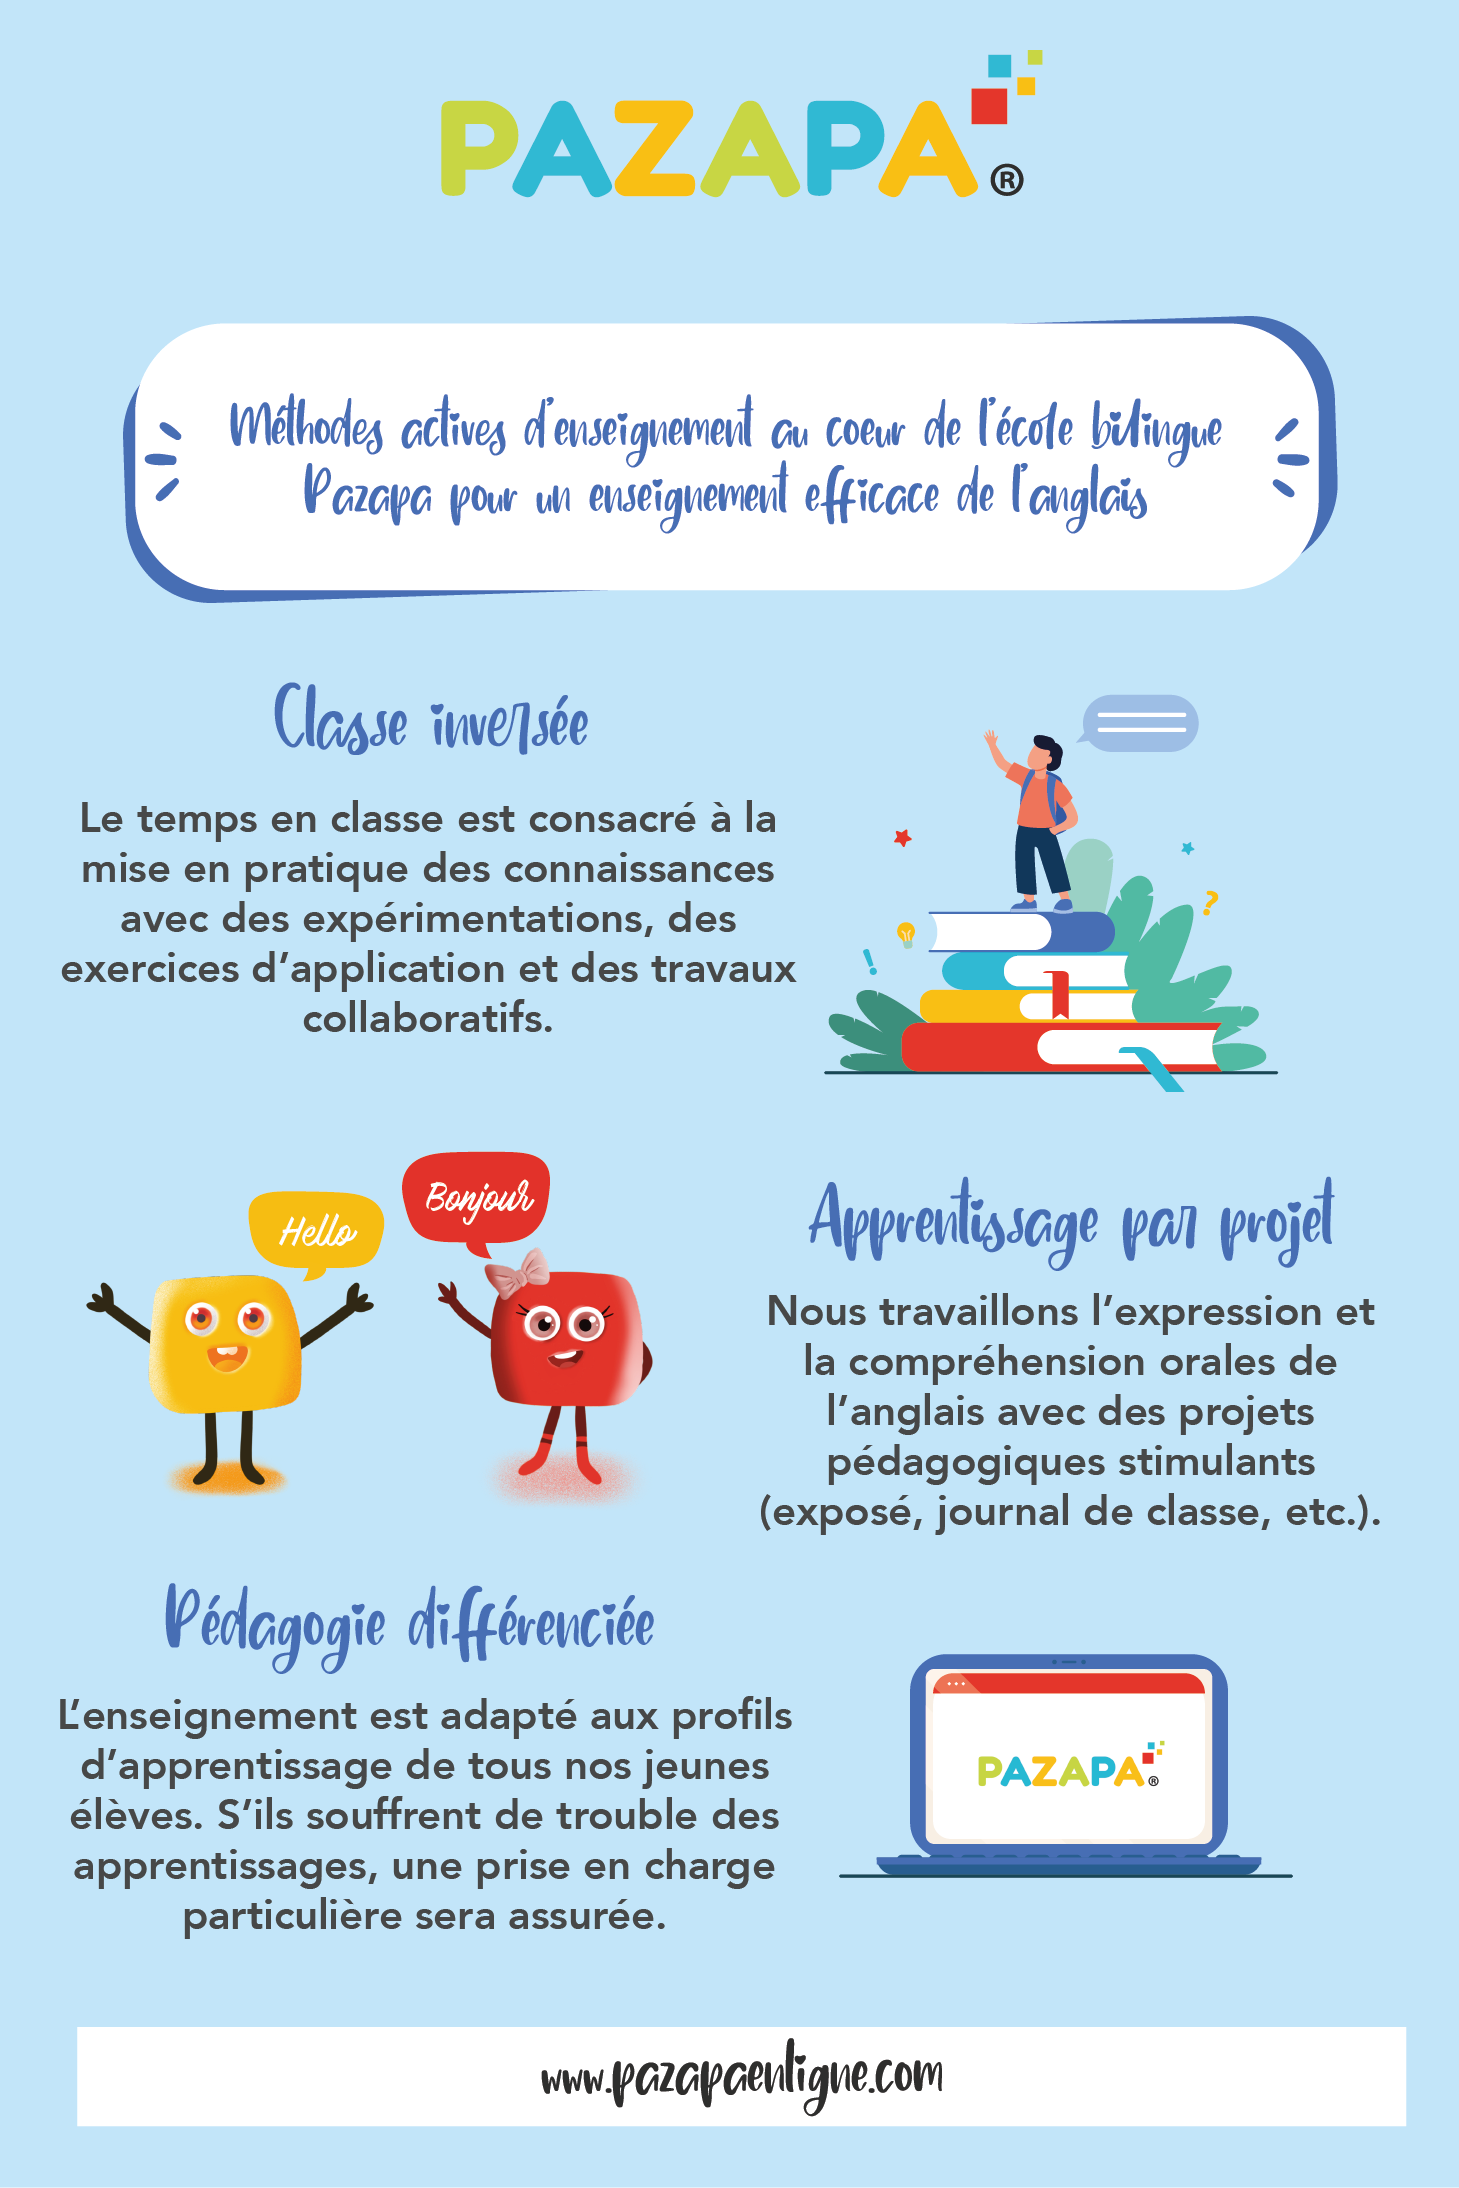 methodes-actives-enseignement-apprentissage-anglais-pazapa-ecole-bilingue-primaire